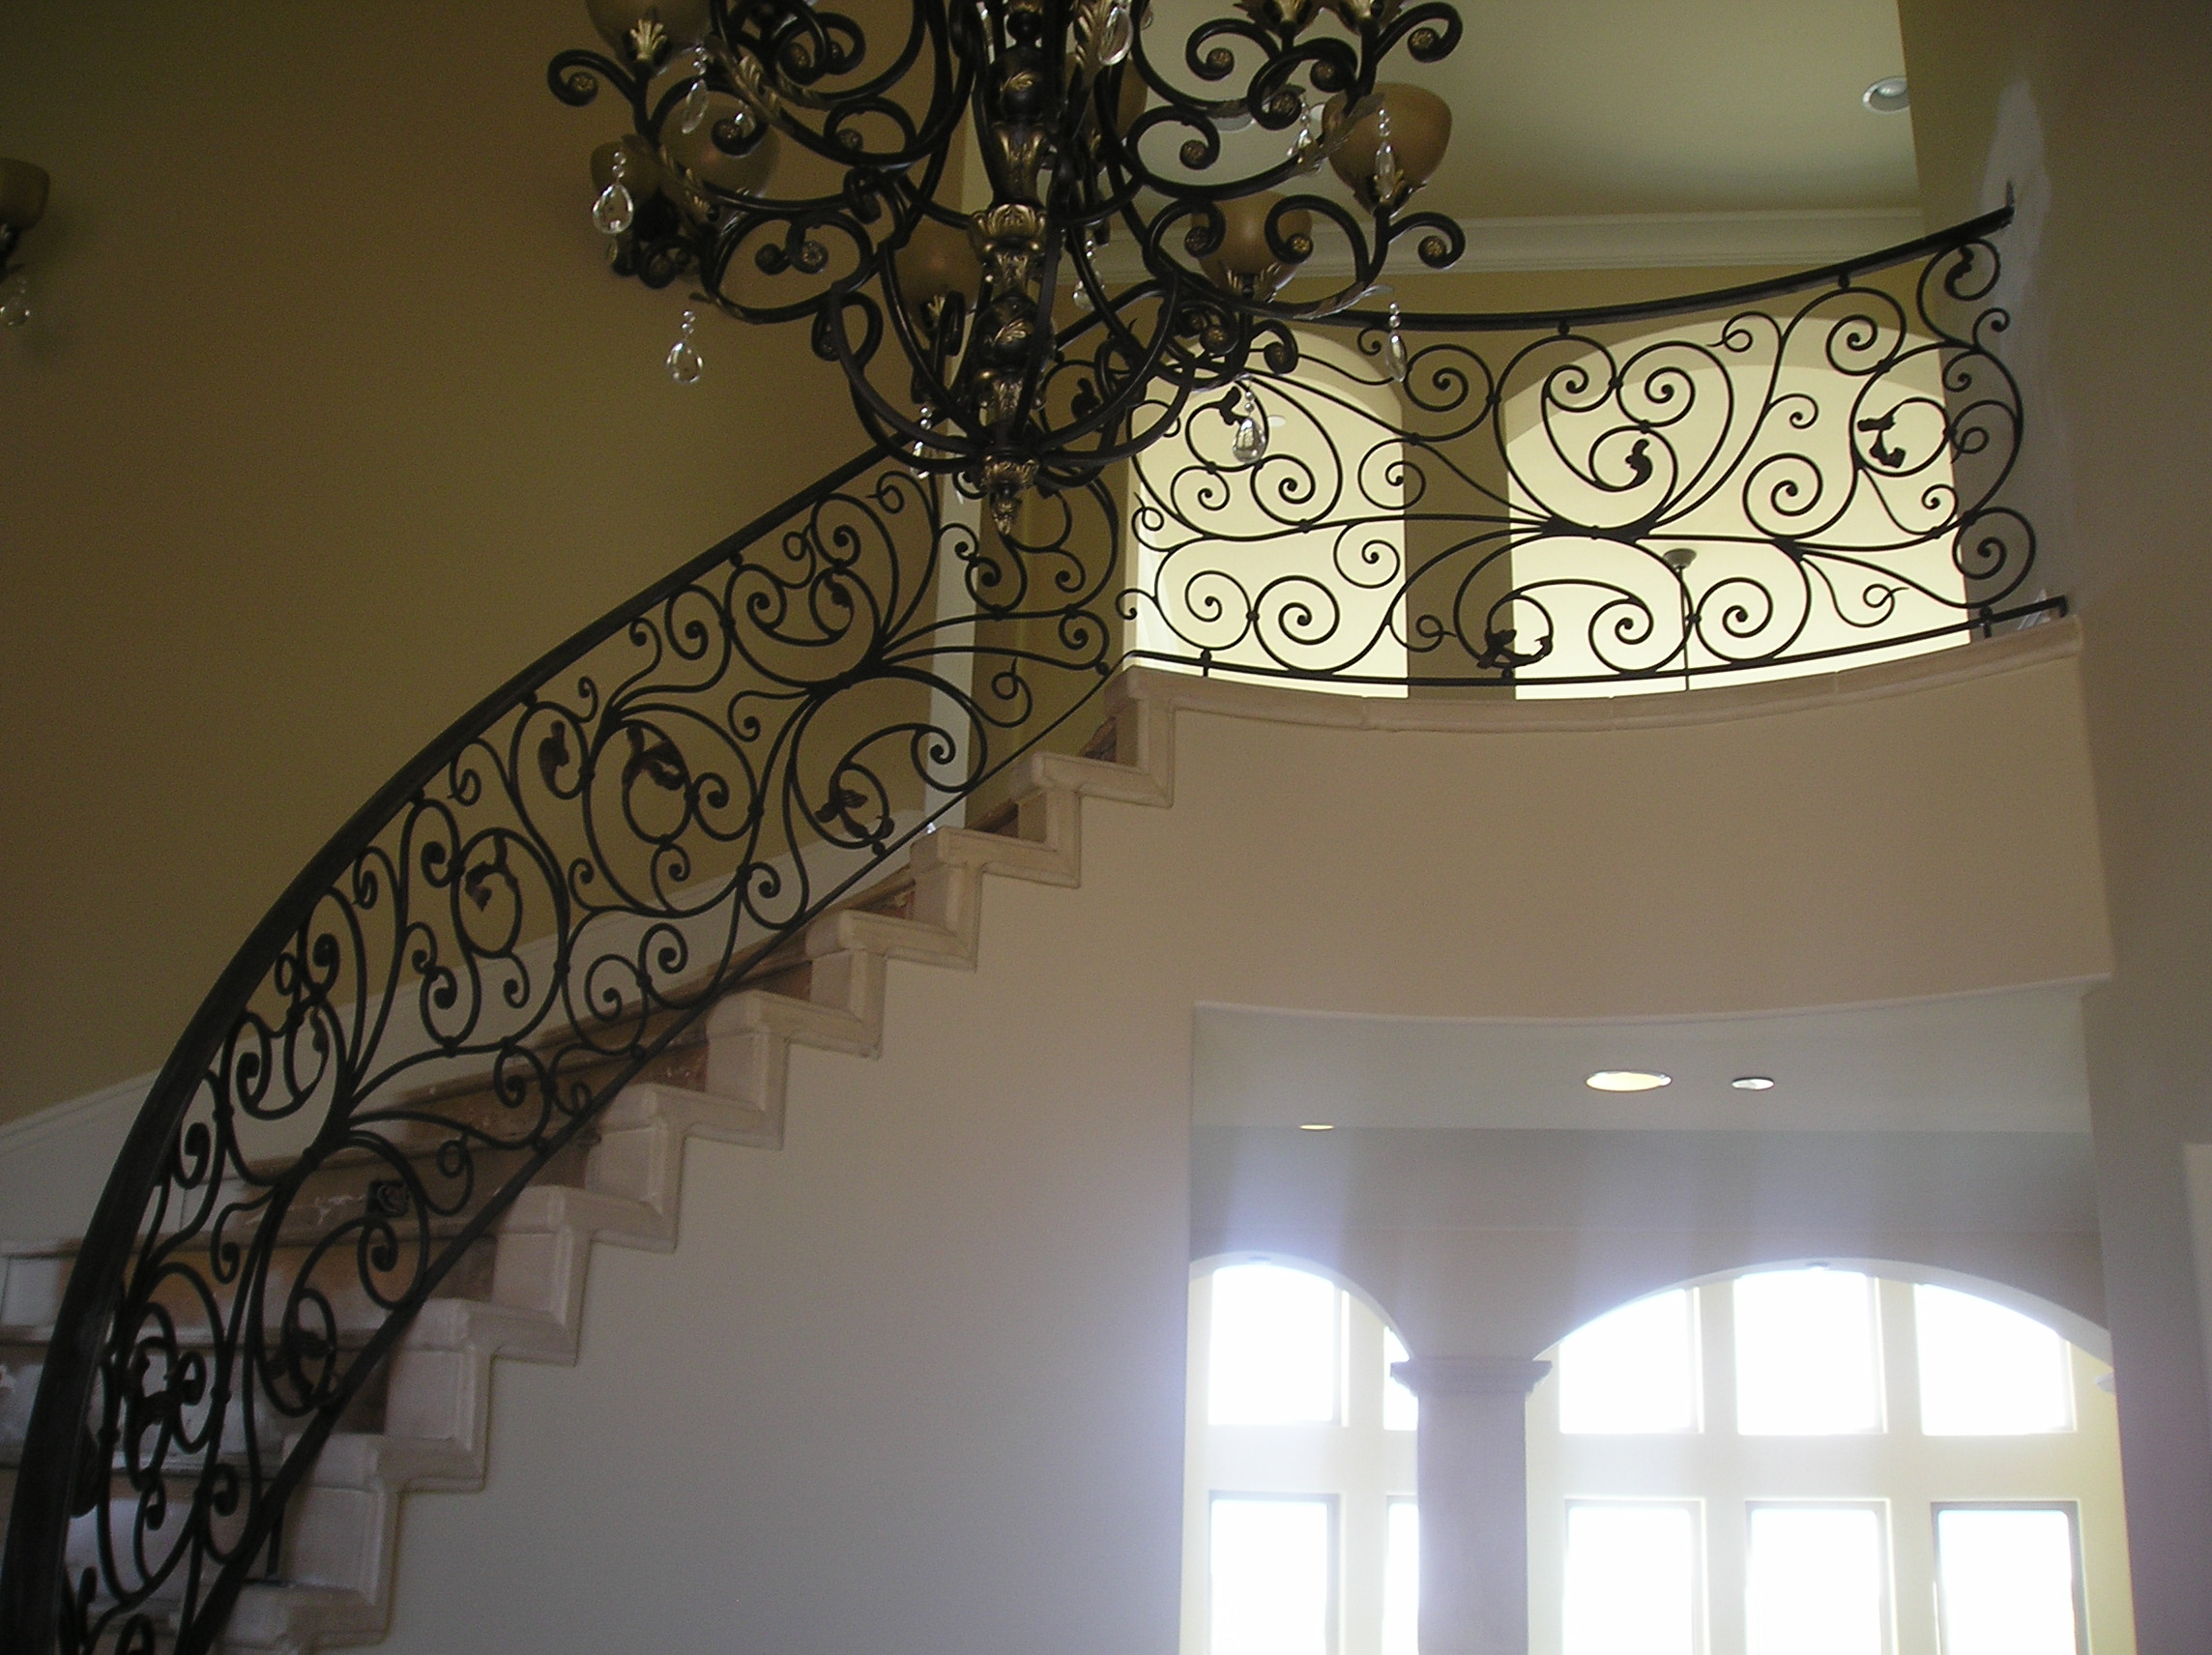 inspiring-metal-railing-stairs-plus-wrought-iron-railings-escondido-hand-designs-for-your-home-alternative-decor-stair-costinspiring-metal-railing-stairs-plus-wrought-iron-railings.jpg